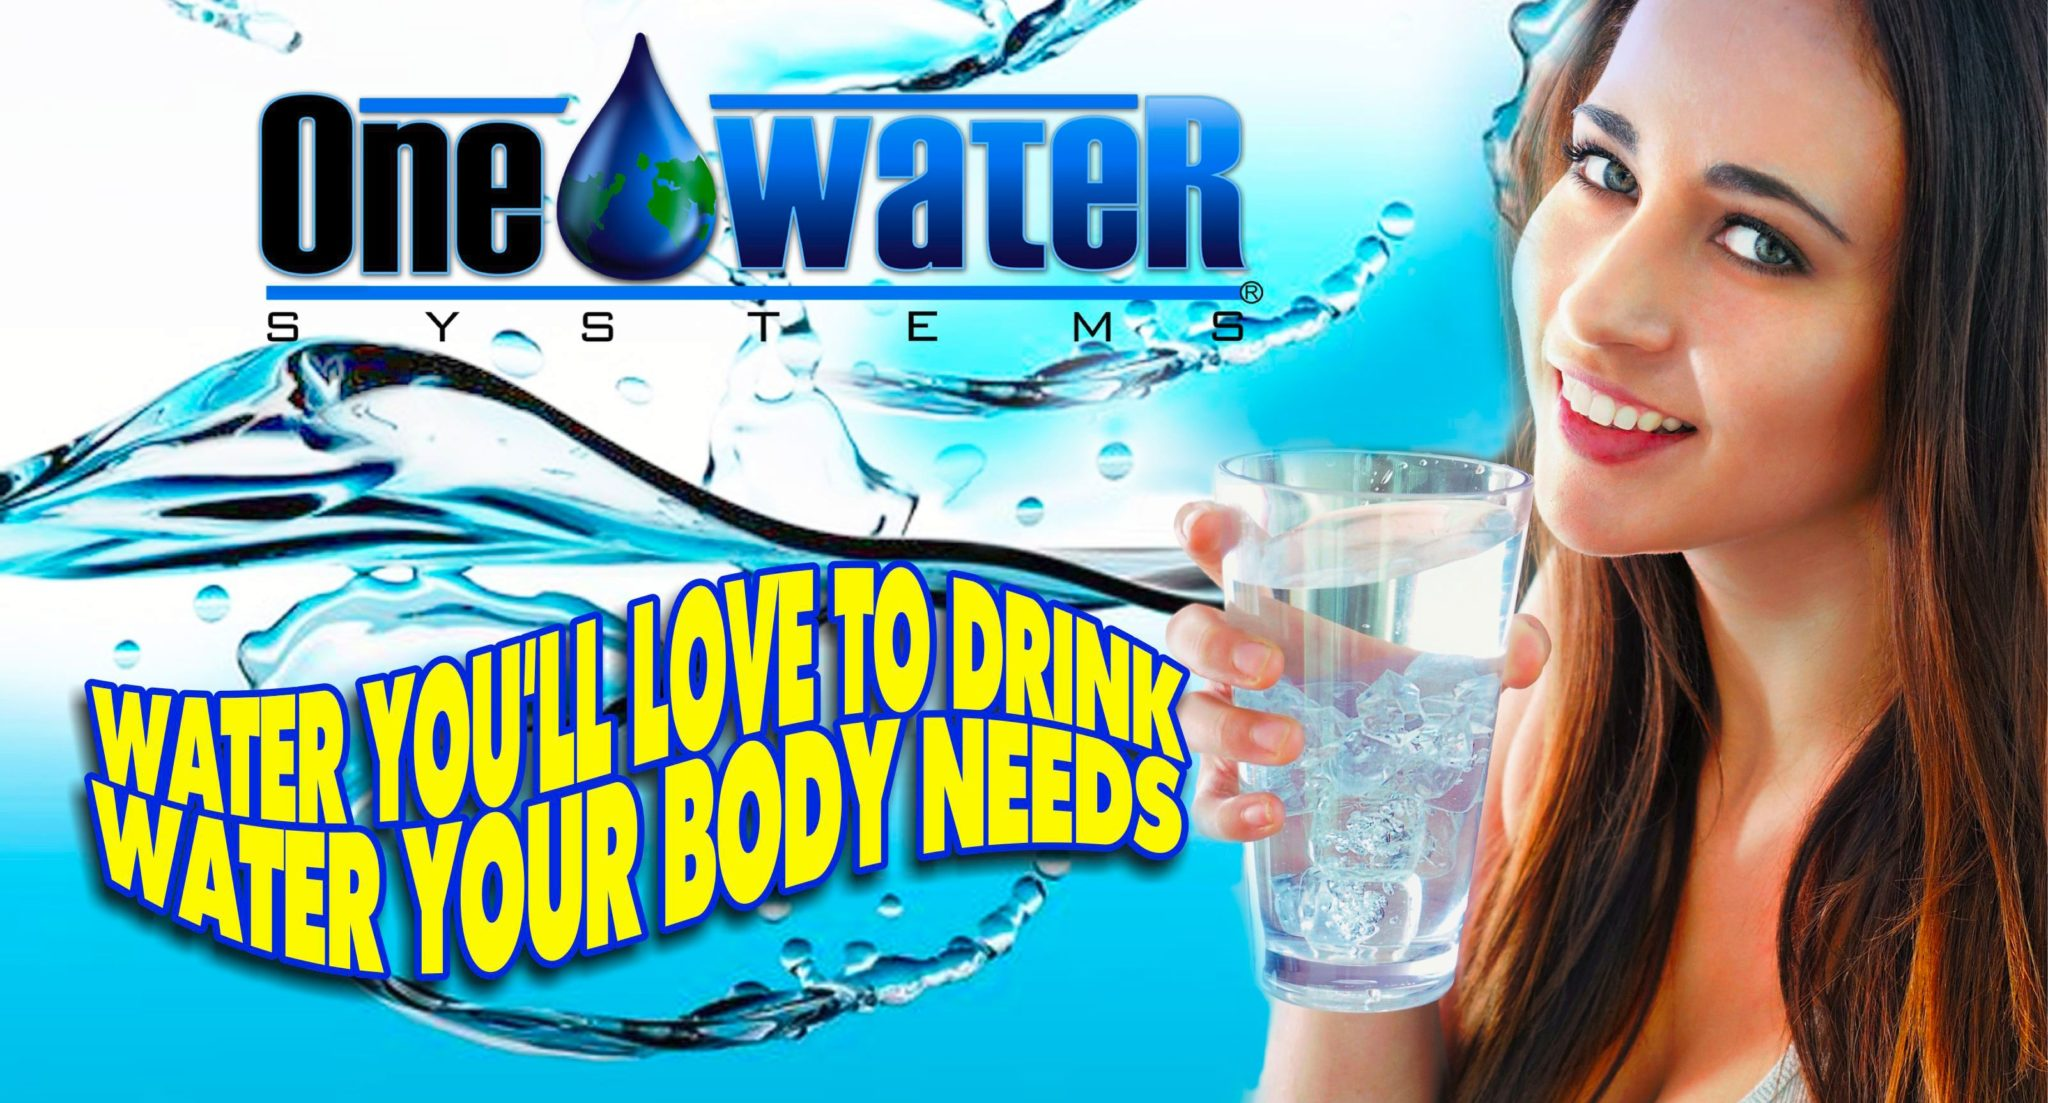 WATER YOU'LL LOVE TO